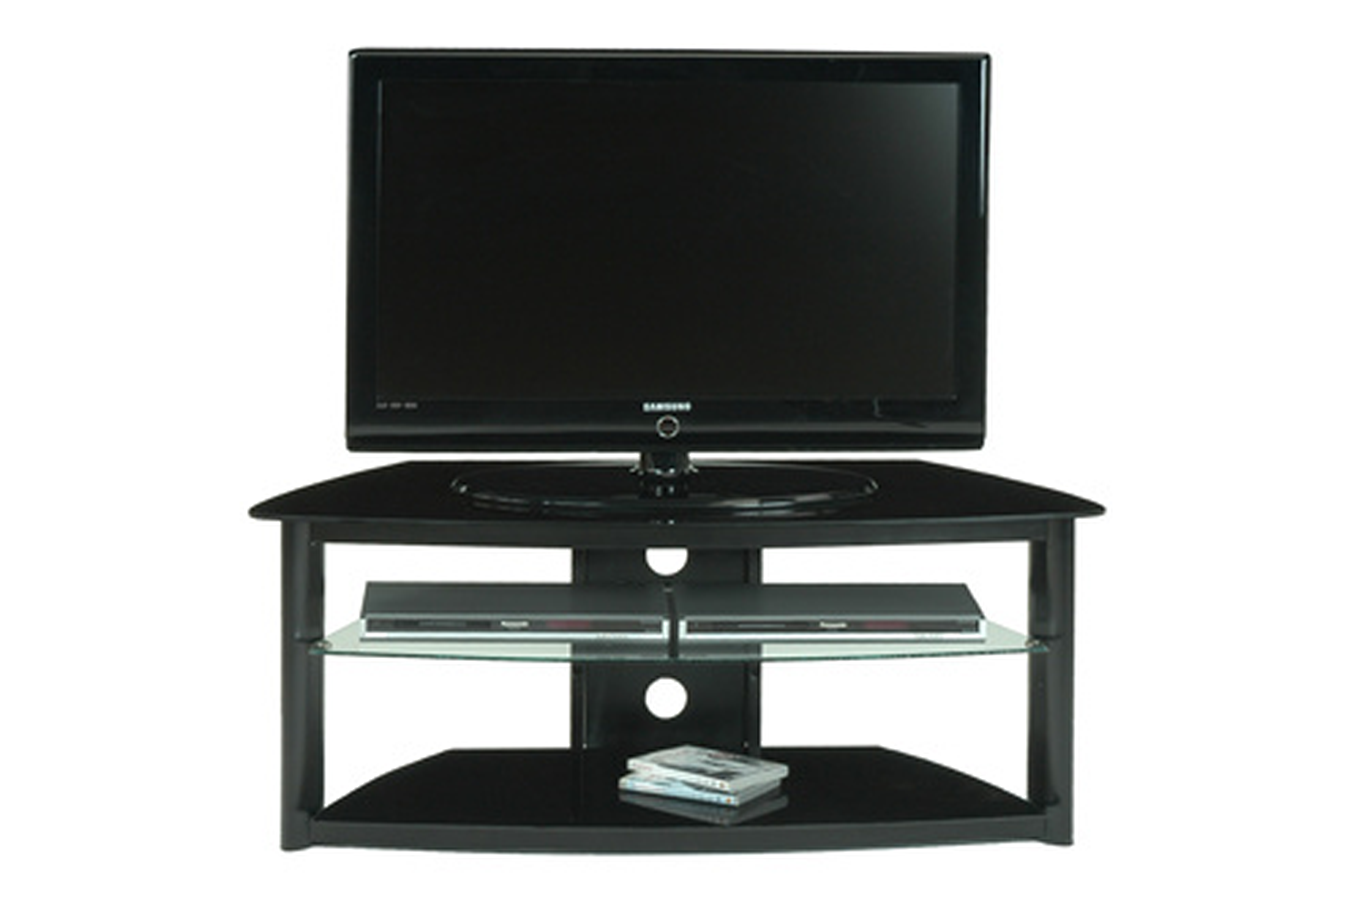 meuble tv jahnke mr 89 noir 2764369 darty. Black Bedroom Furniture Sets. Home Design Ideas